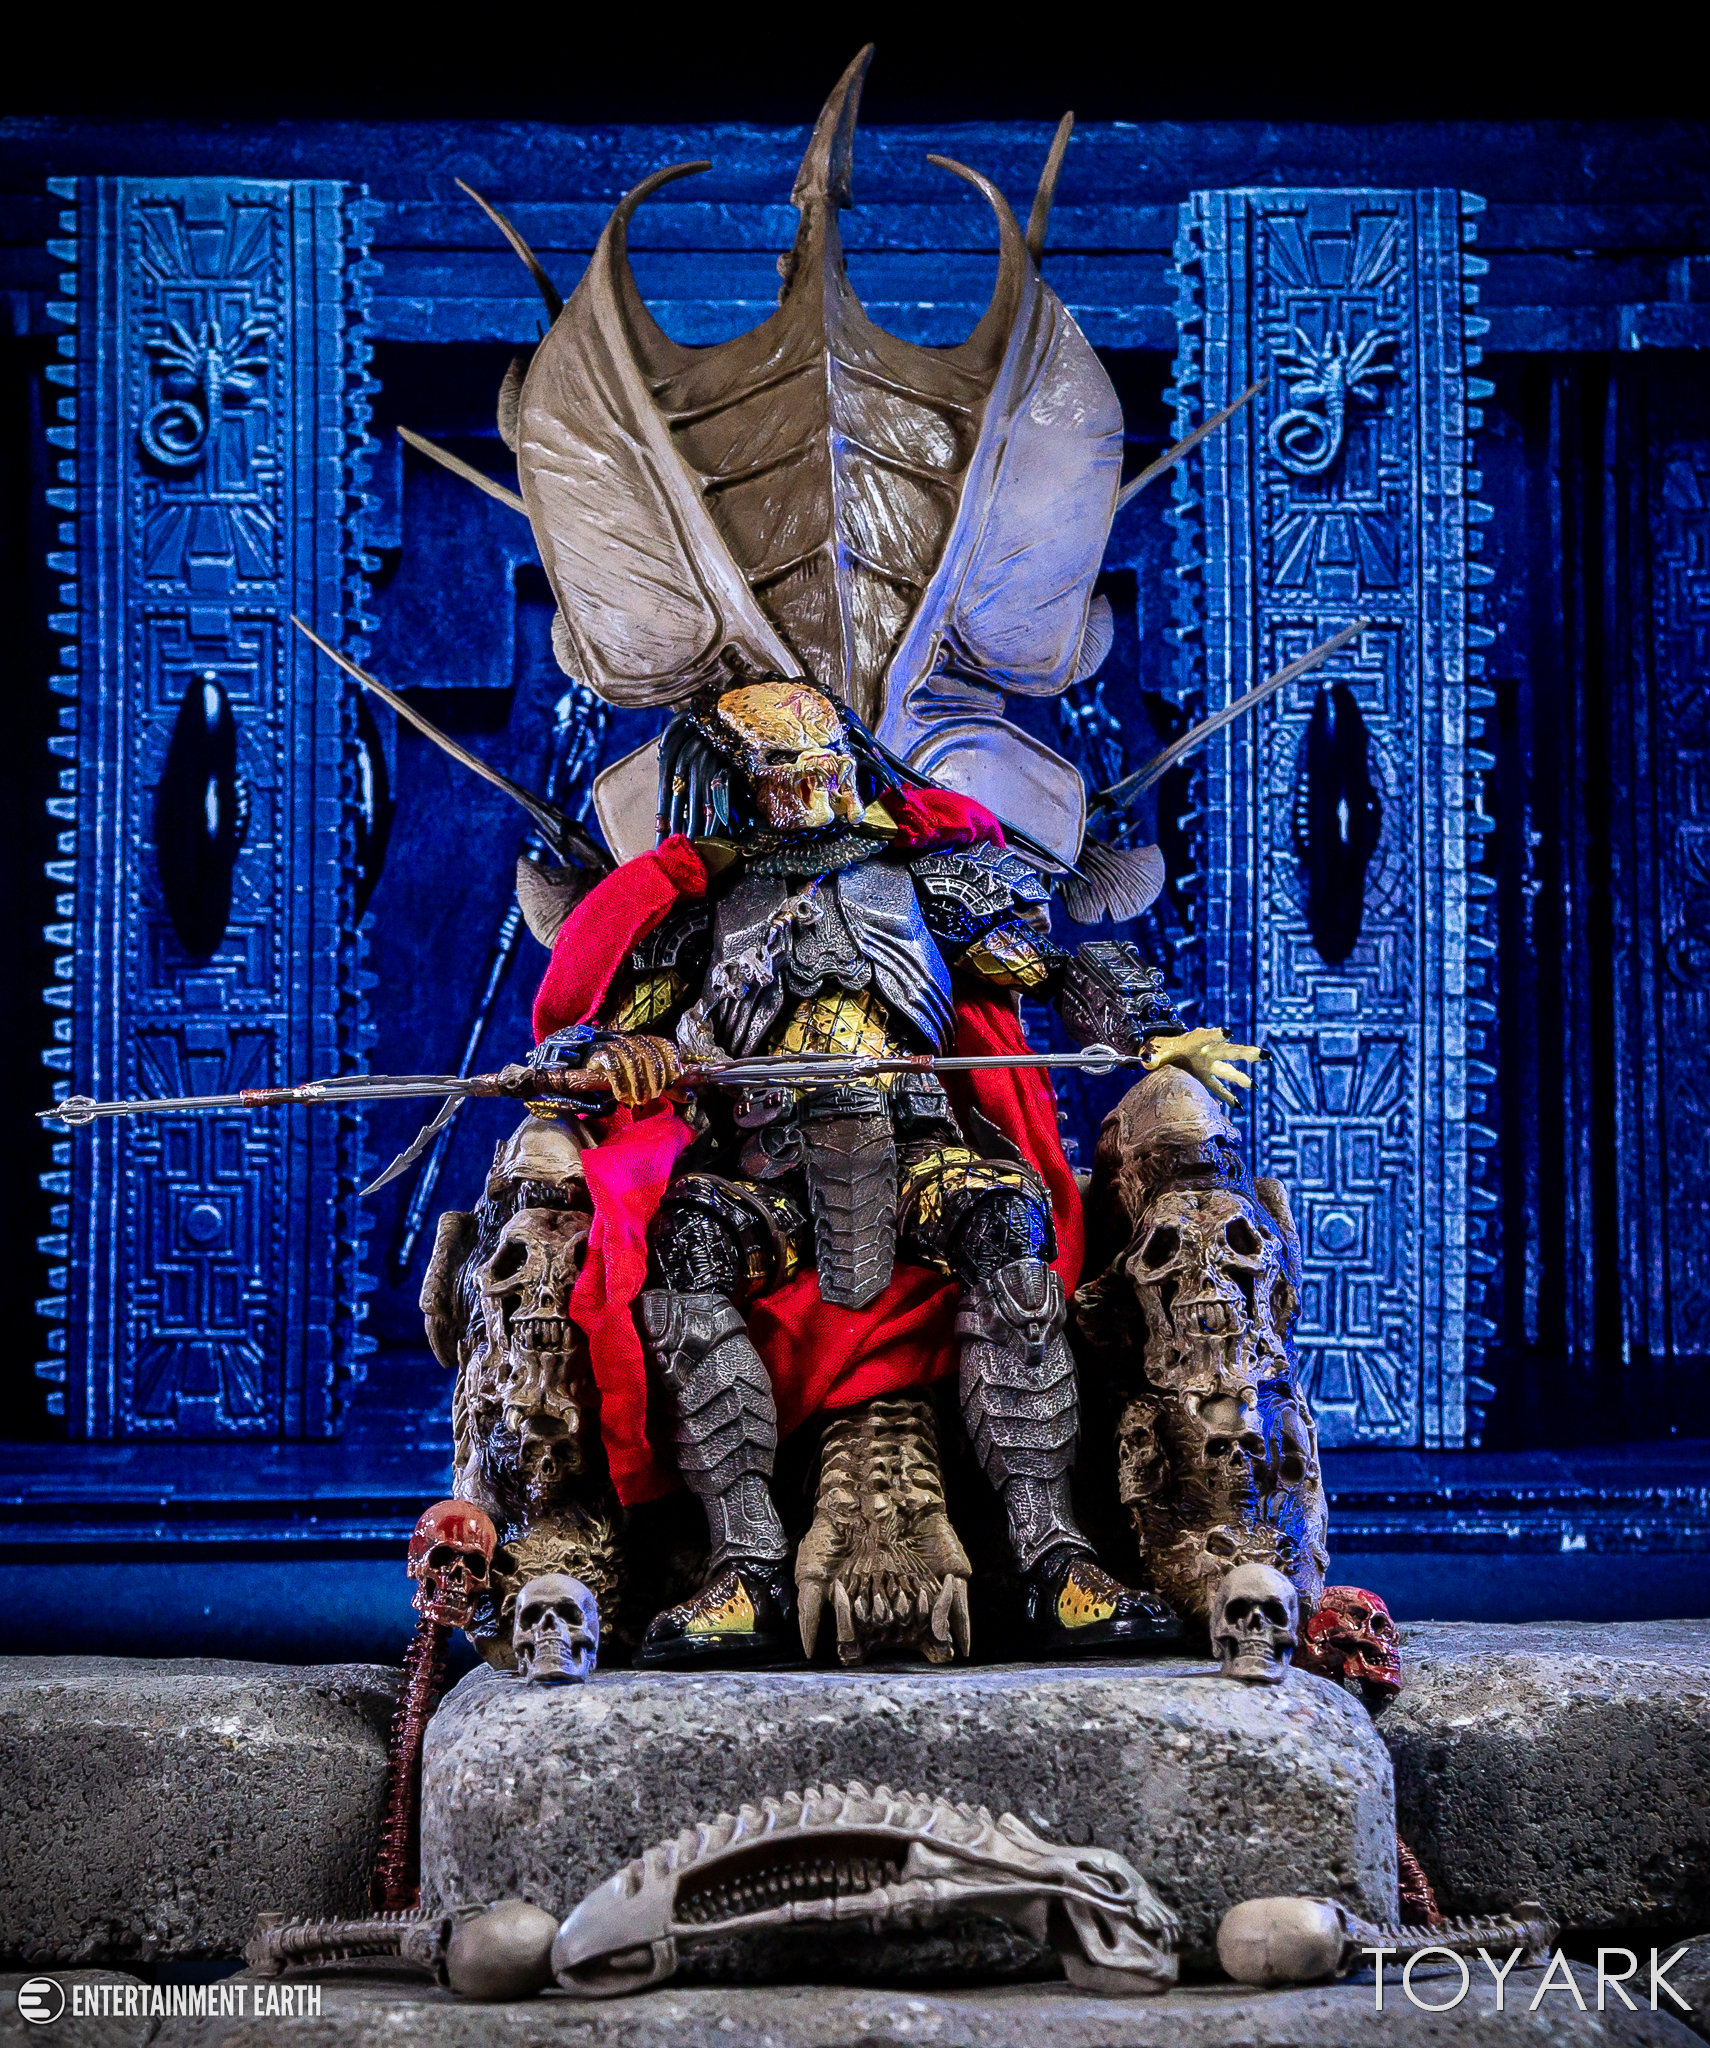 https://news.toyark.com/wp-content/uploads/sites/4/2018/05/NECA-Predator-Throne-034.jpg